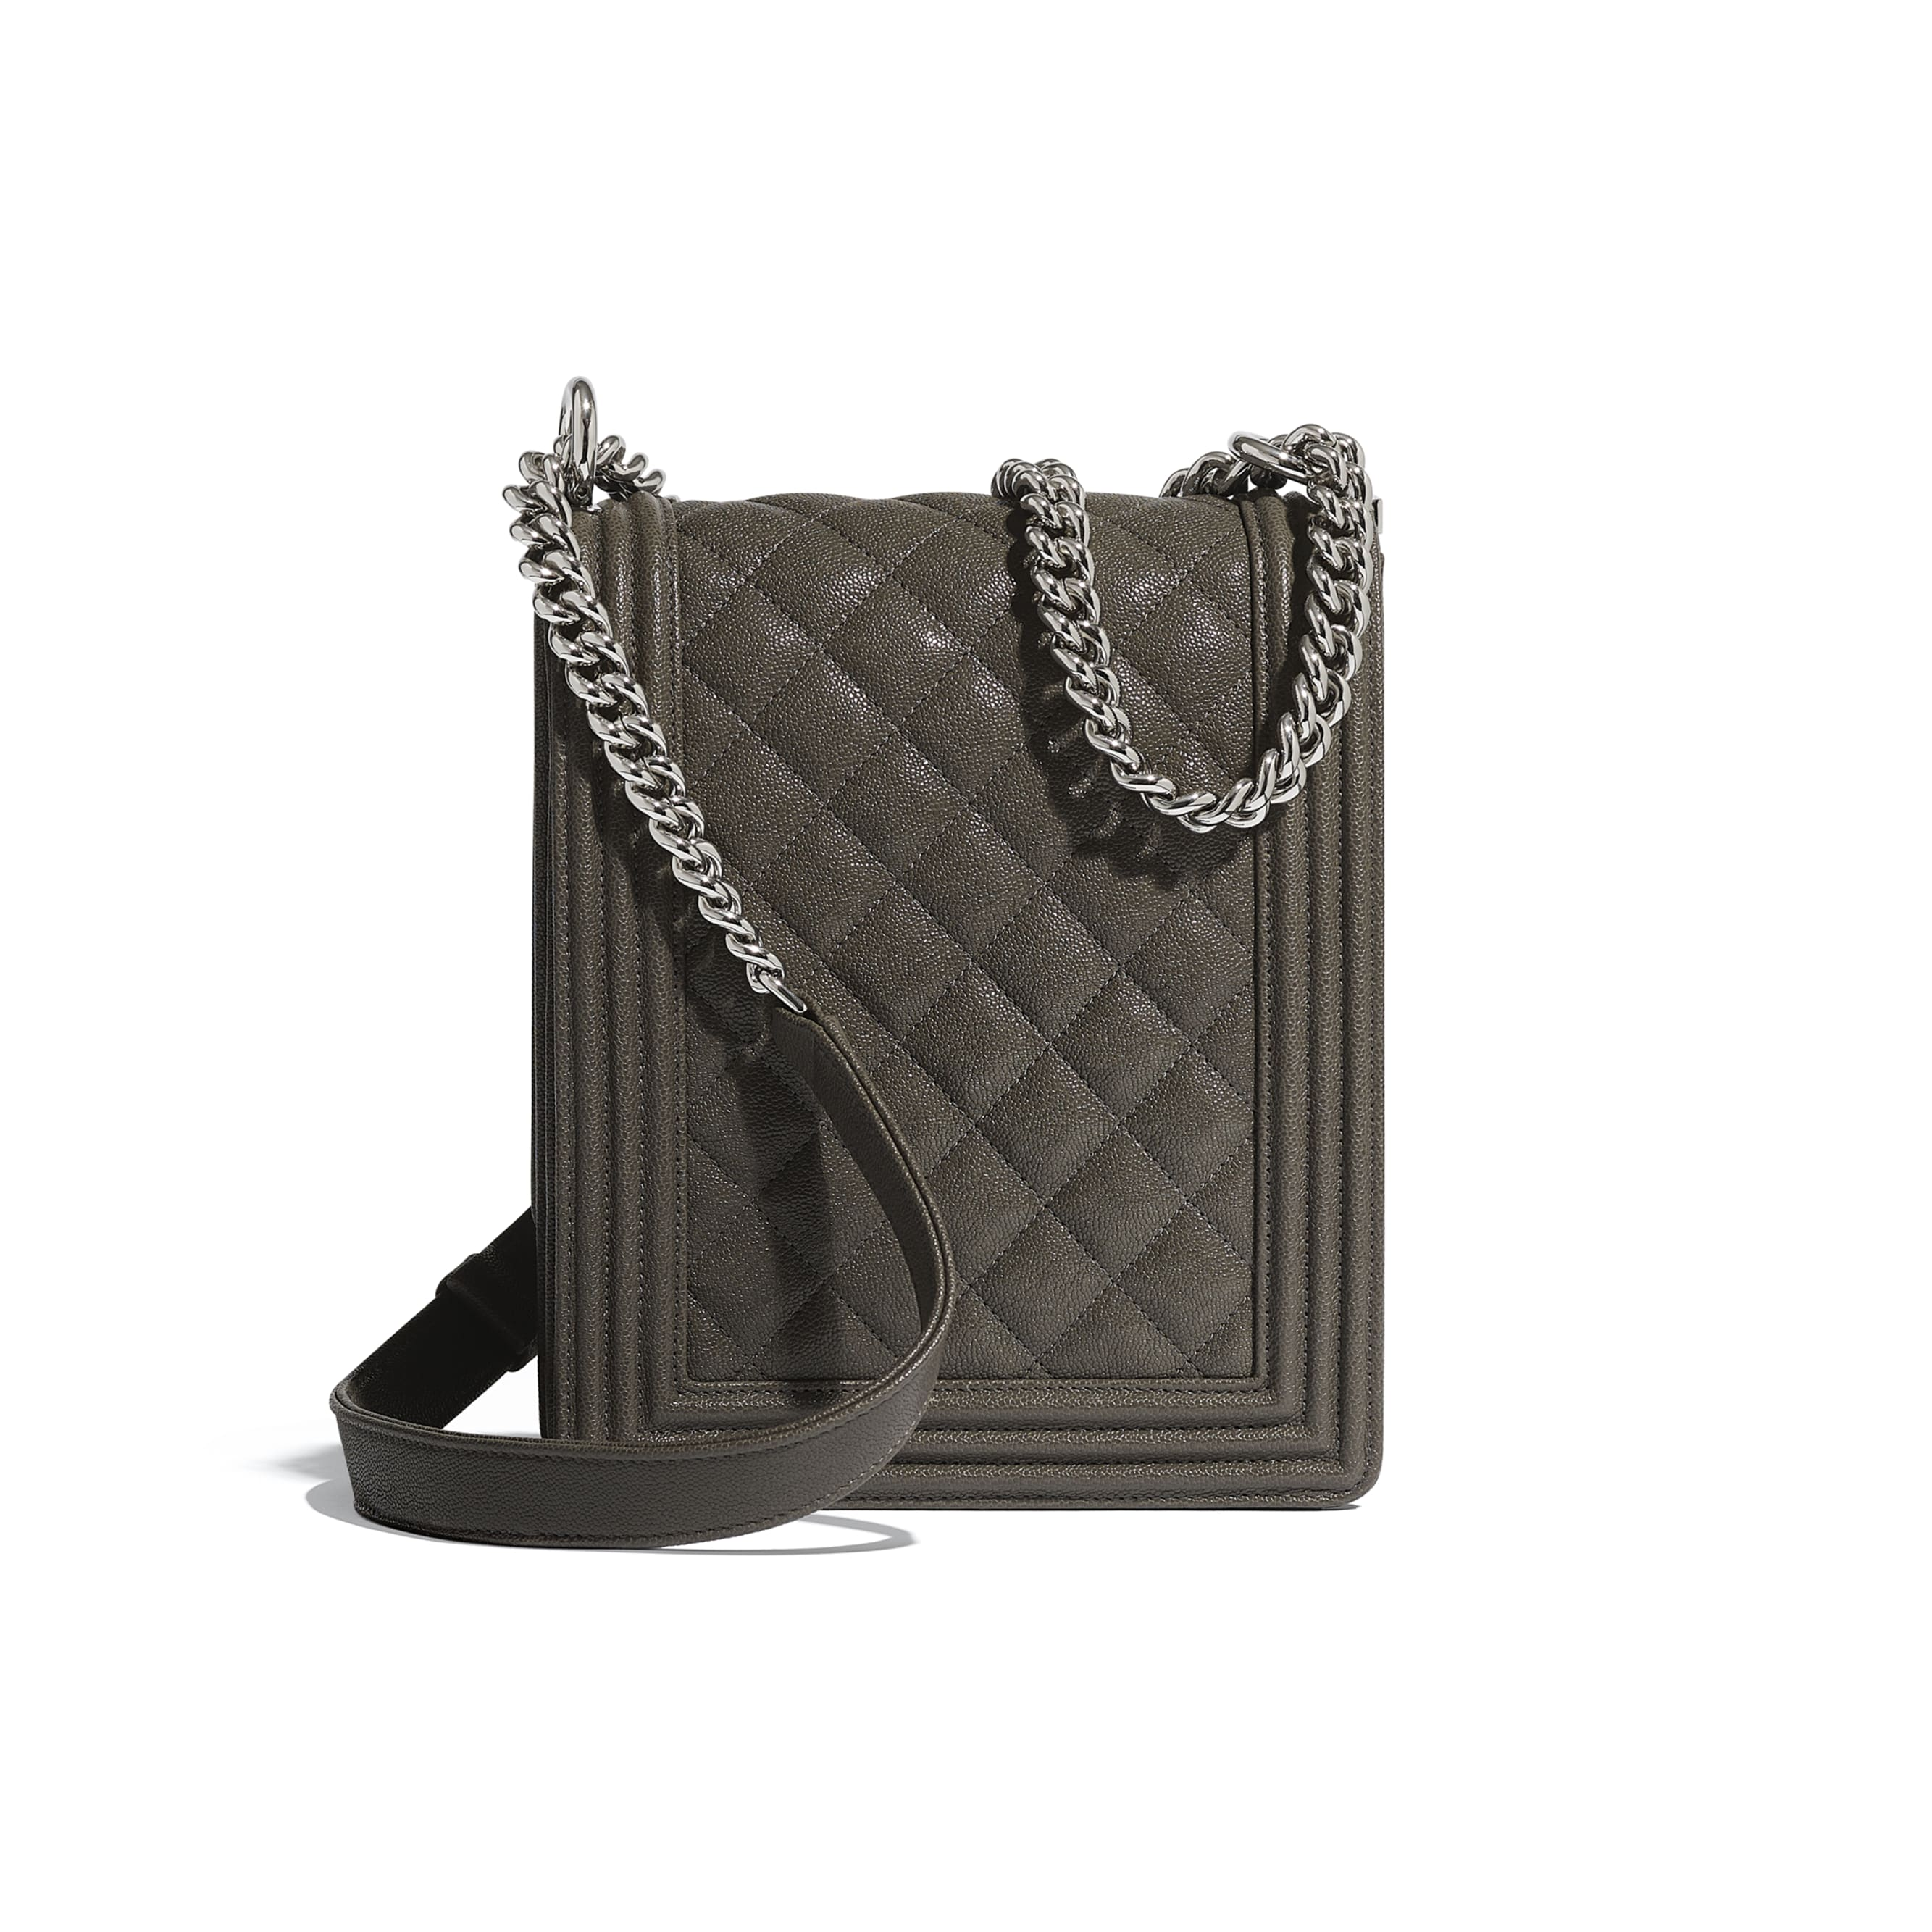 BOY CHANEL Handbag - Grey - Grained Calfskin & Silver Metal - Alternative view - see standard sized version